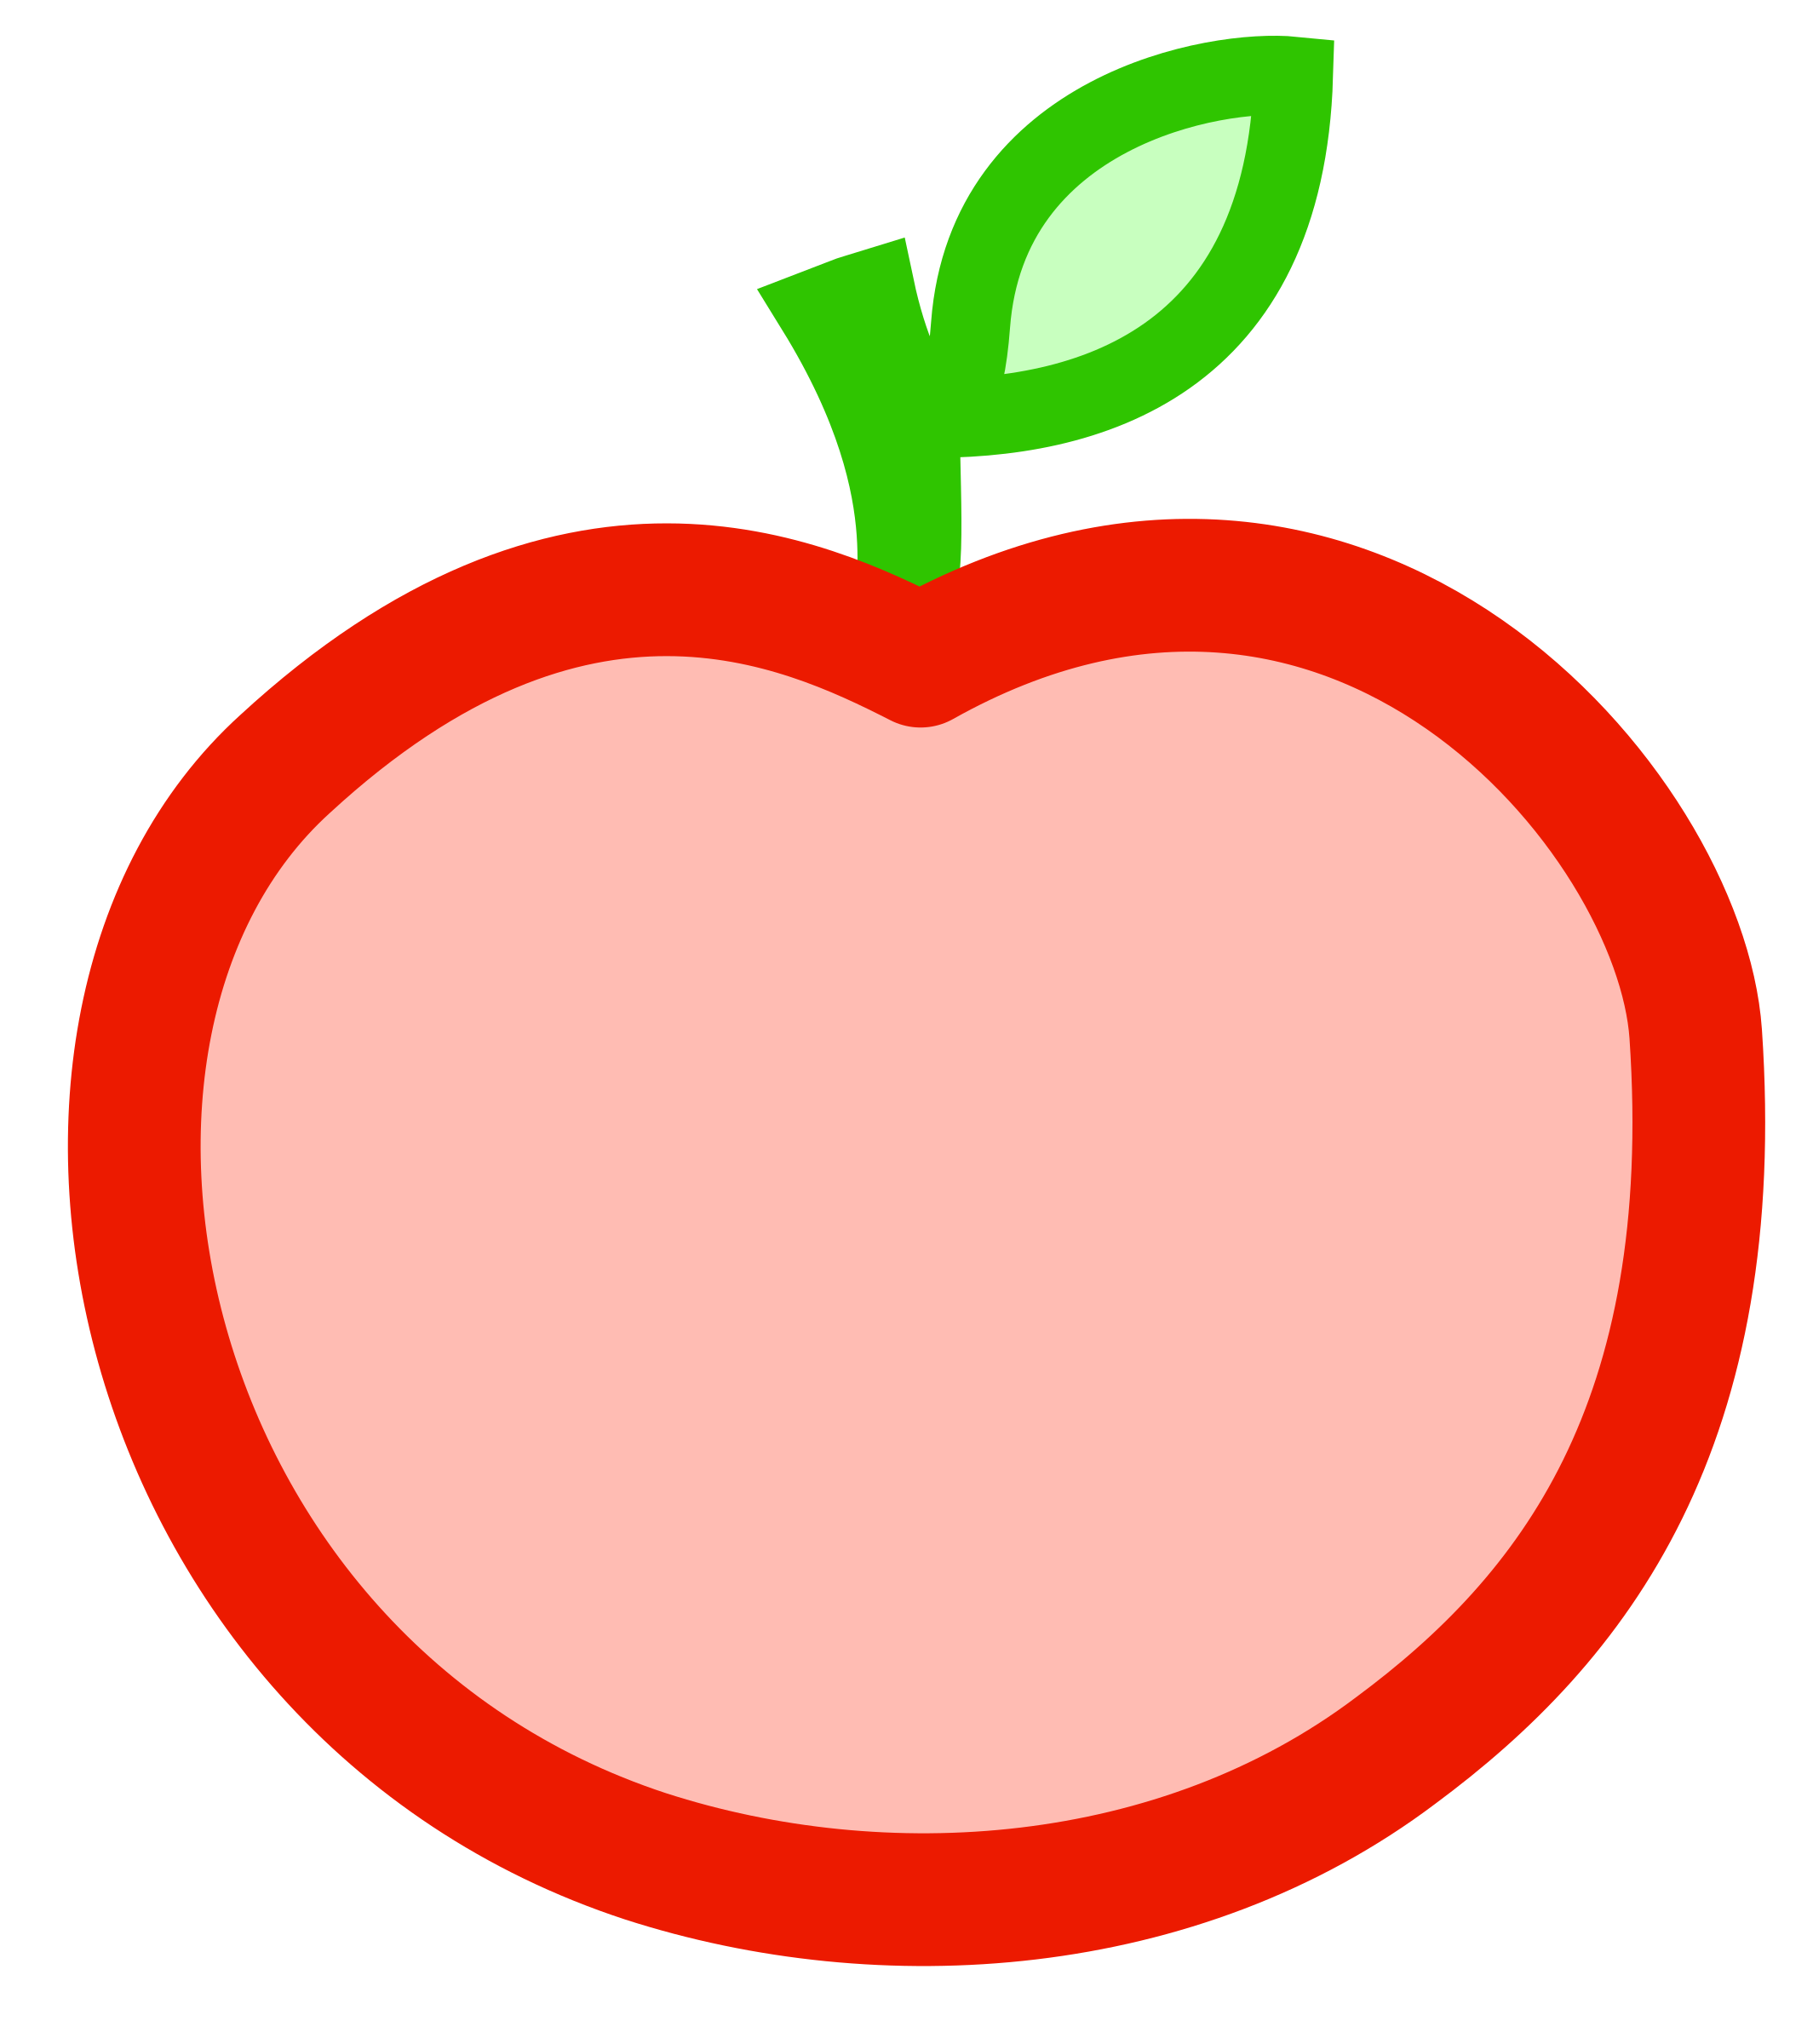 Cut apple clipart clip library Cut Apple Clipart | Free download best Cut Apple Clipart on ... clip library